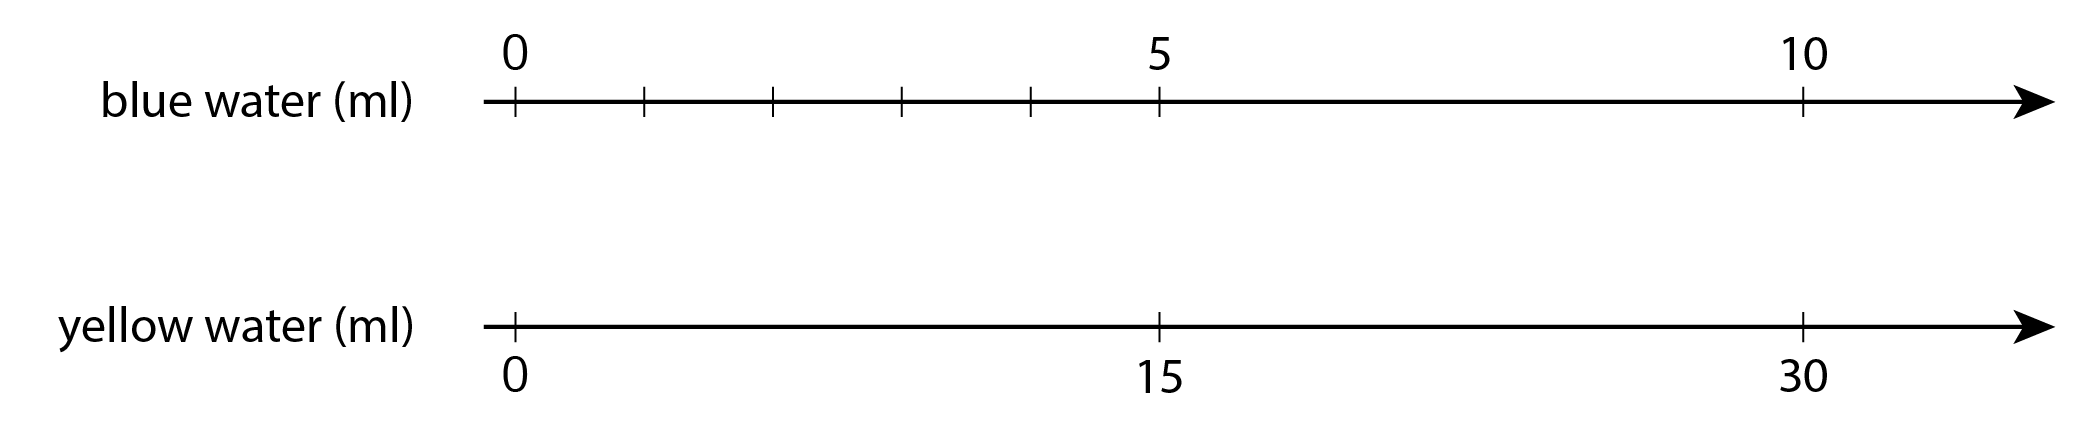 """A double number line where the top number line is labeled ""blue water, in milliliters"" and the numbers 0, 5, and 10 are indicated. There are 4 evenly spaced tick marks between 0 and 5. The bottom number line is labeled ""yellow water, in milliliters"" and the numbers 0, 15, and 30 are indicated."""